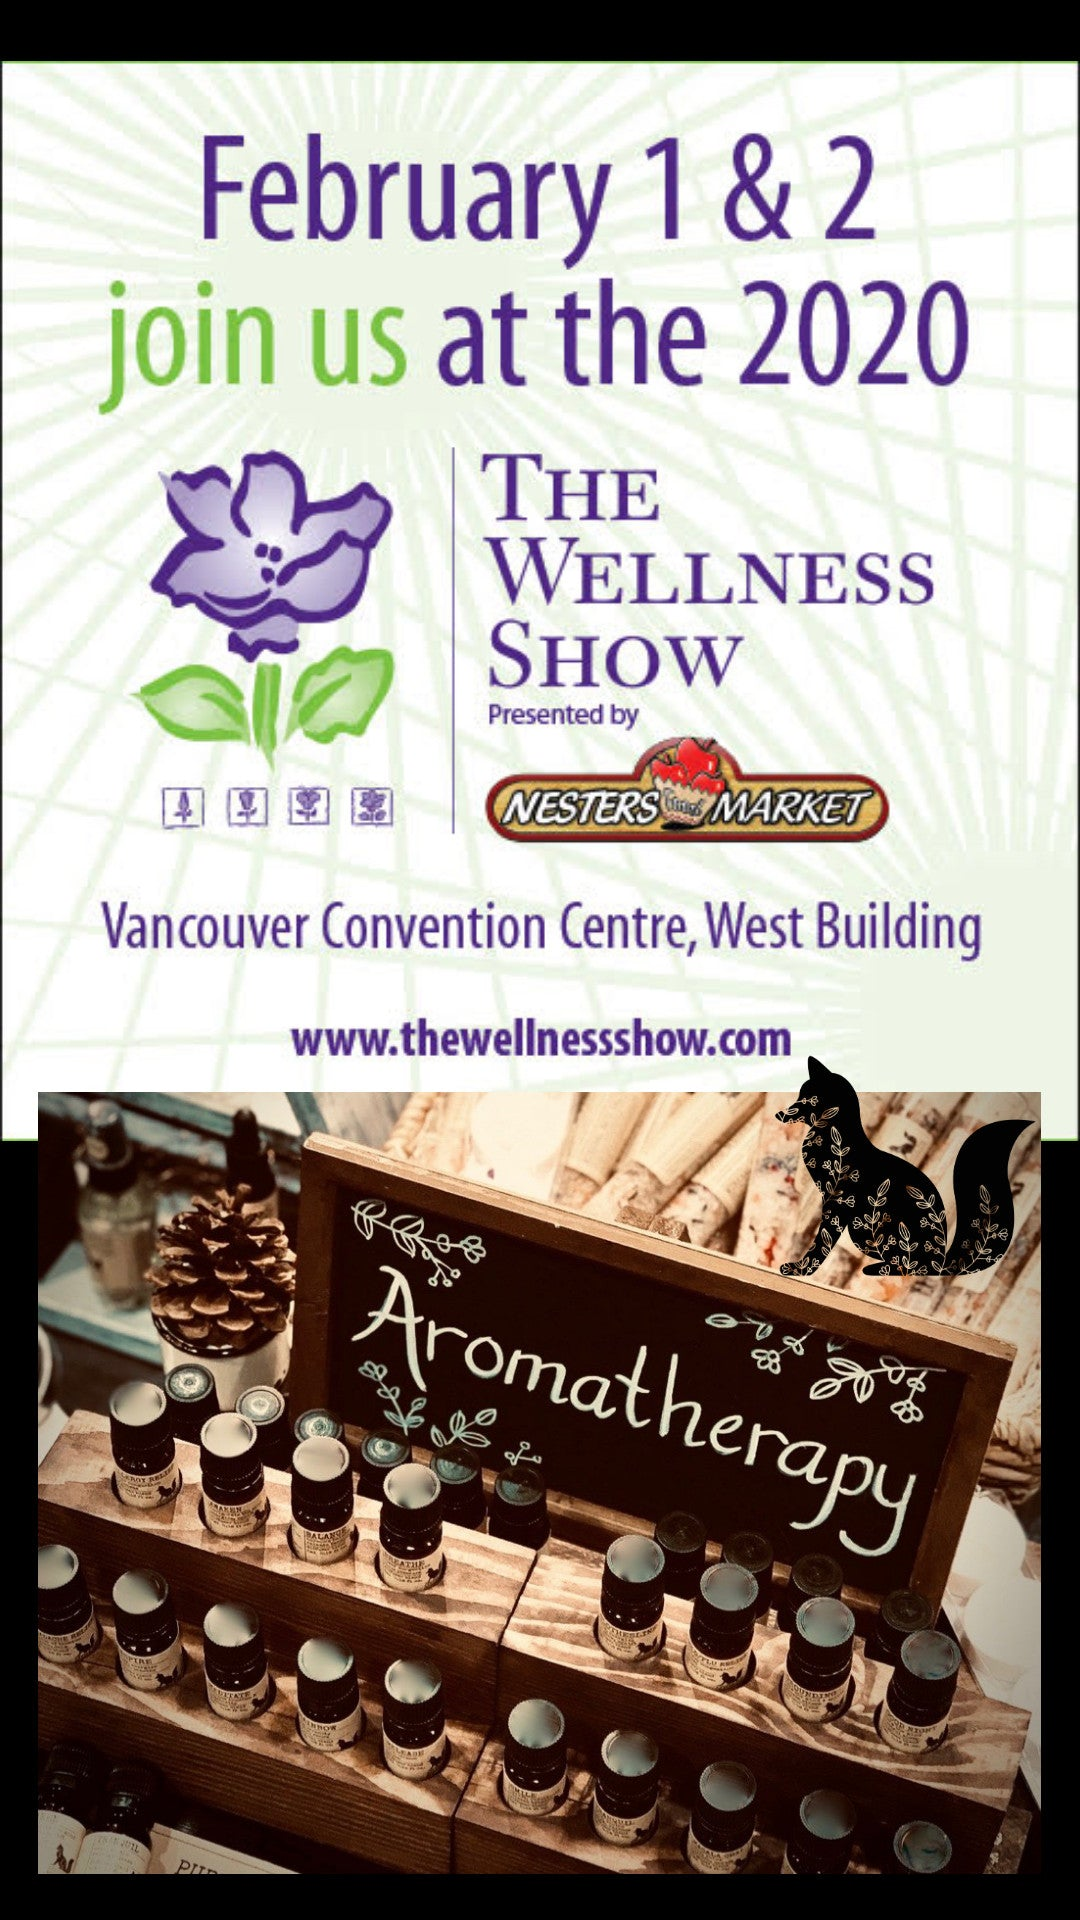 The Wellness Show Vancouver 2020